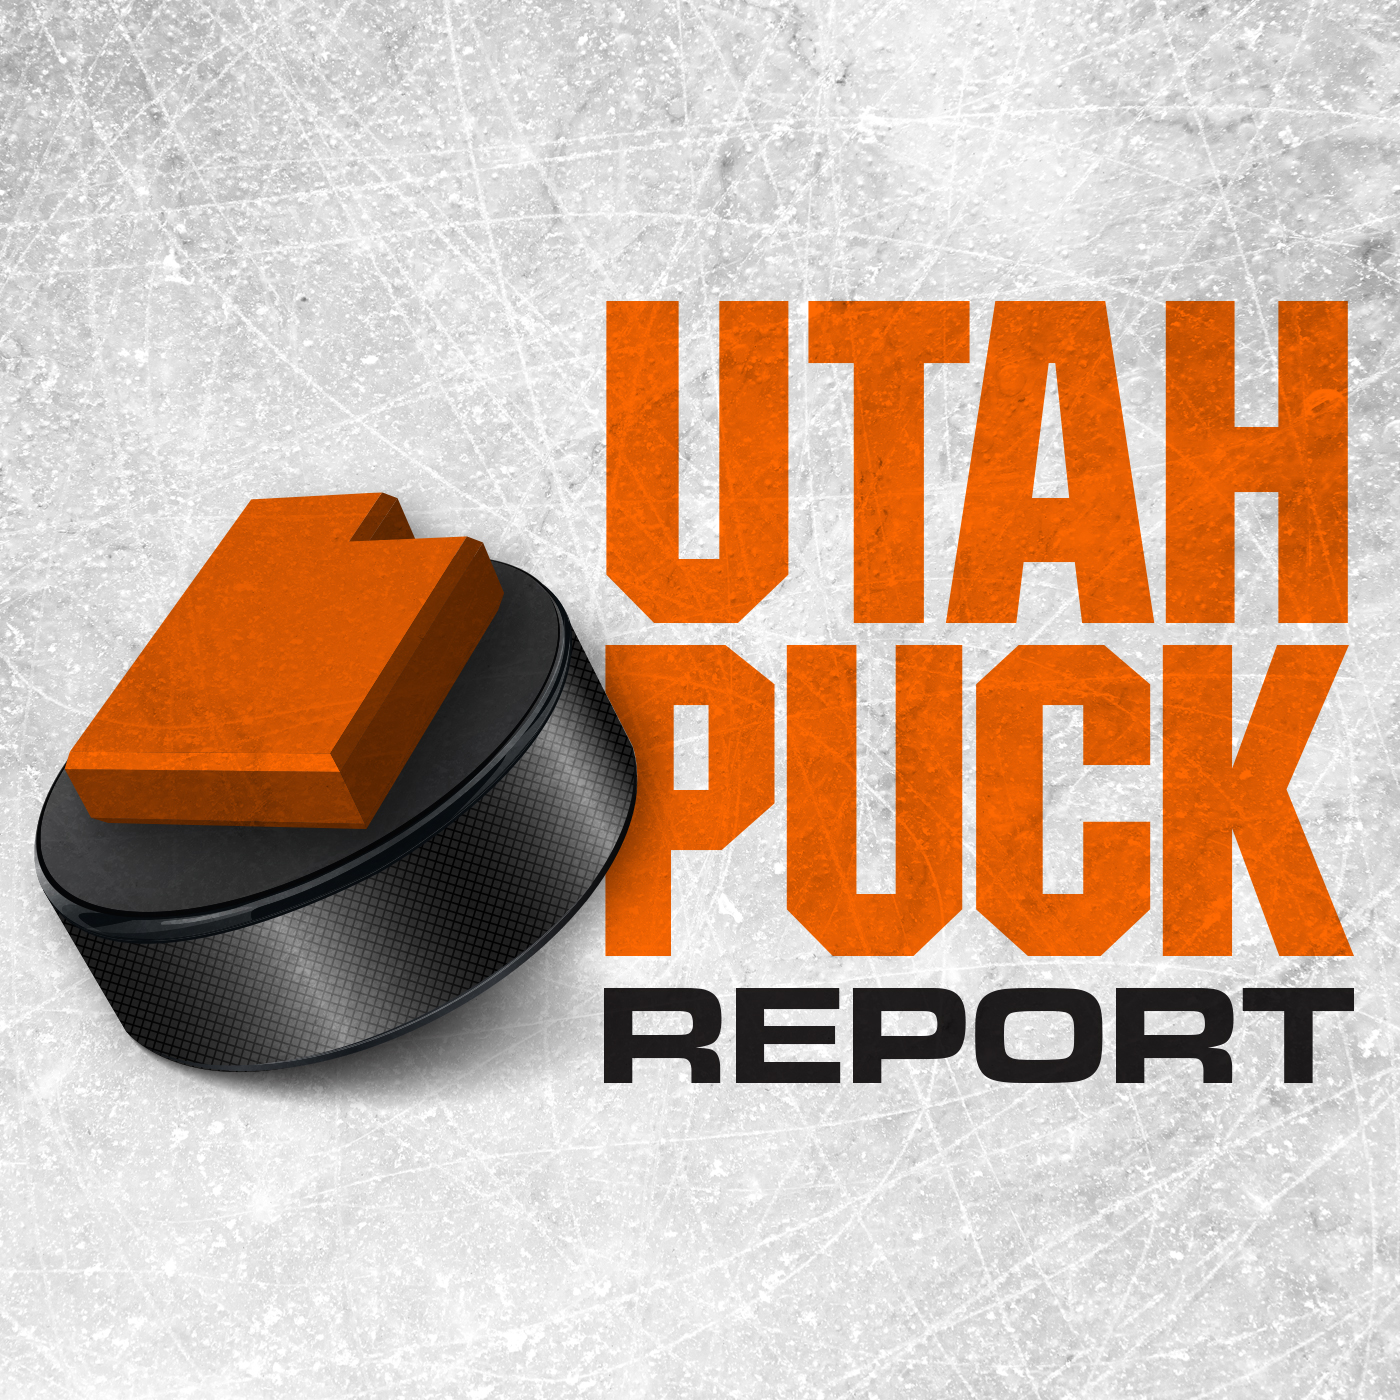 Artwork for Welcome to the Utah Puck Report - Are You Ready?